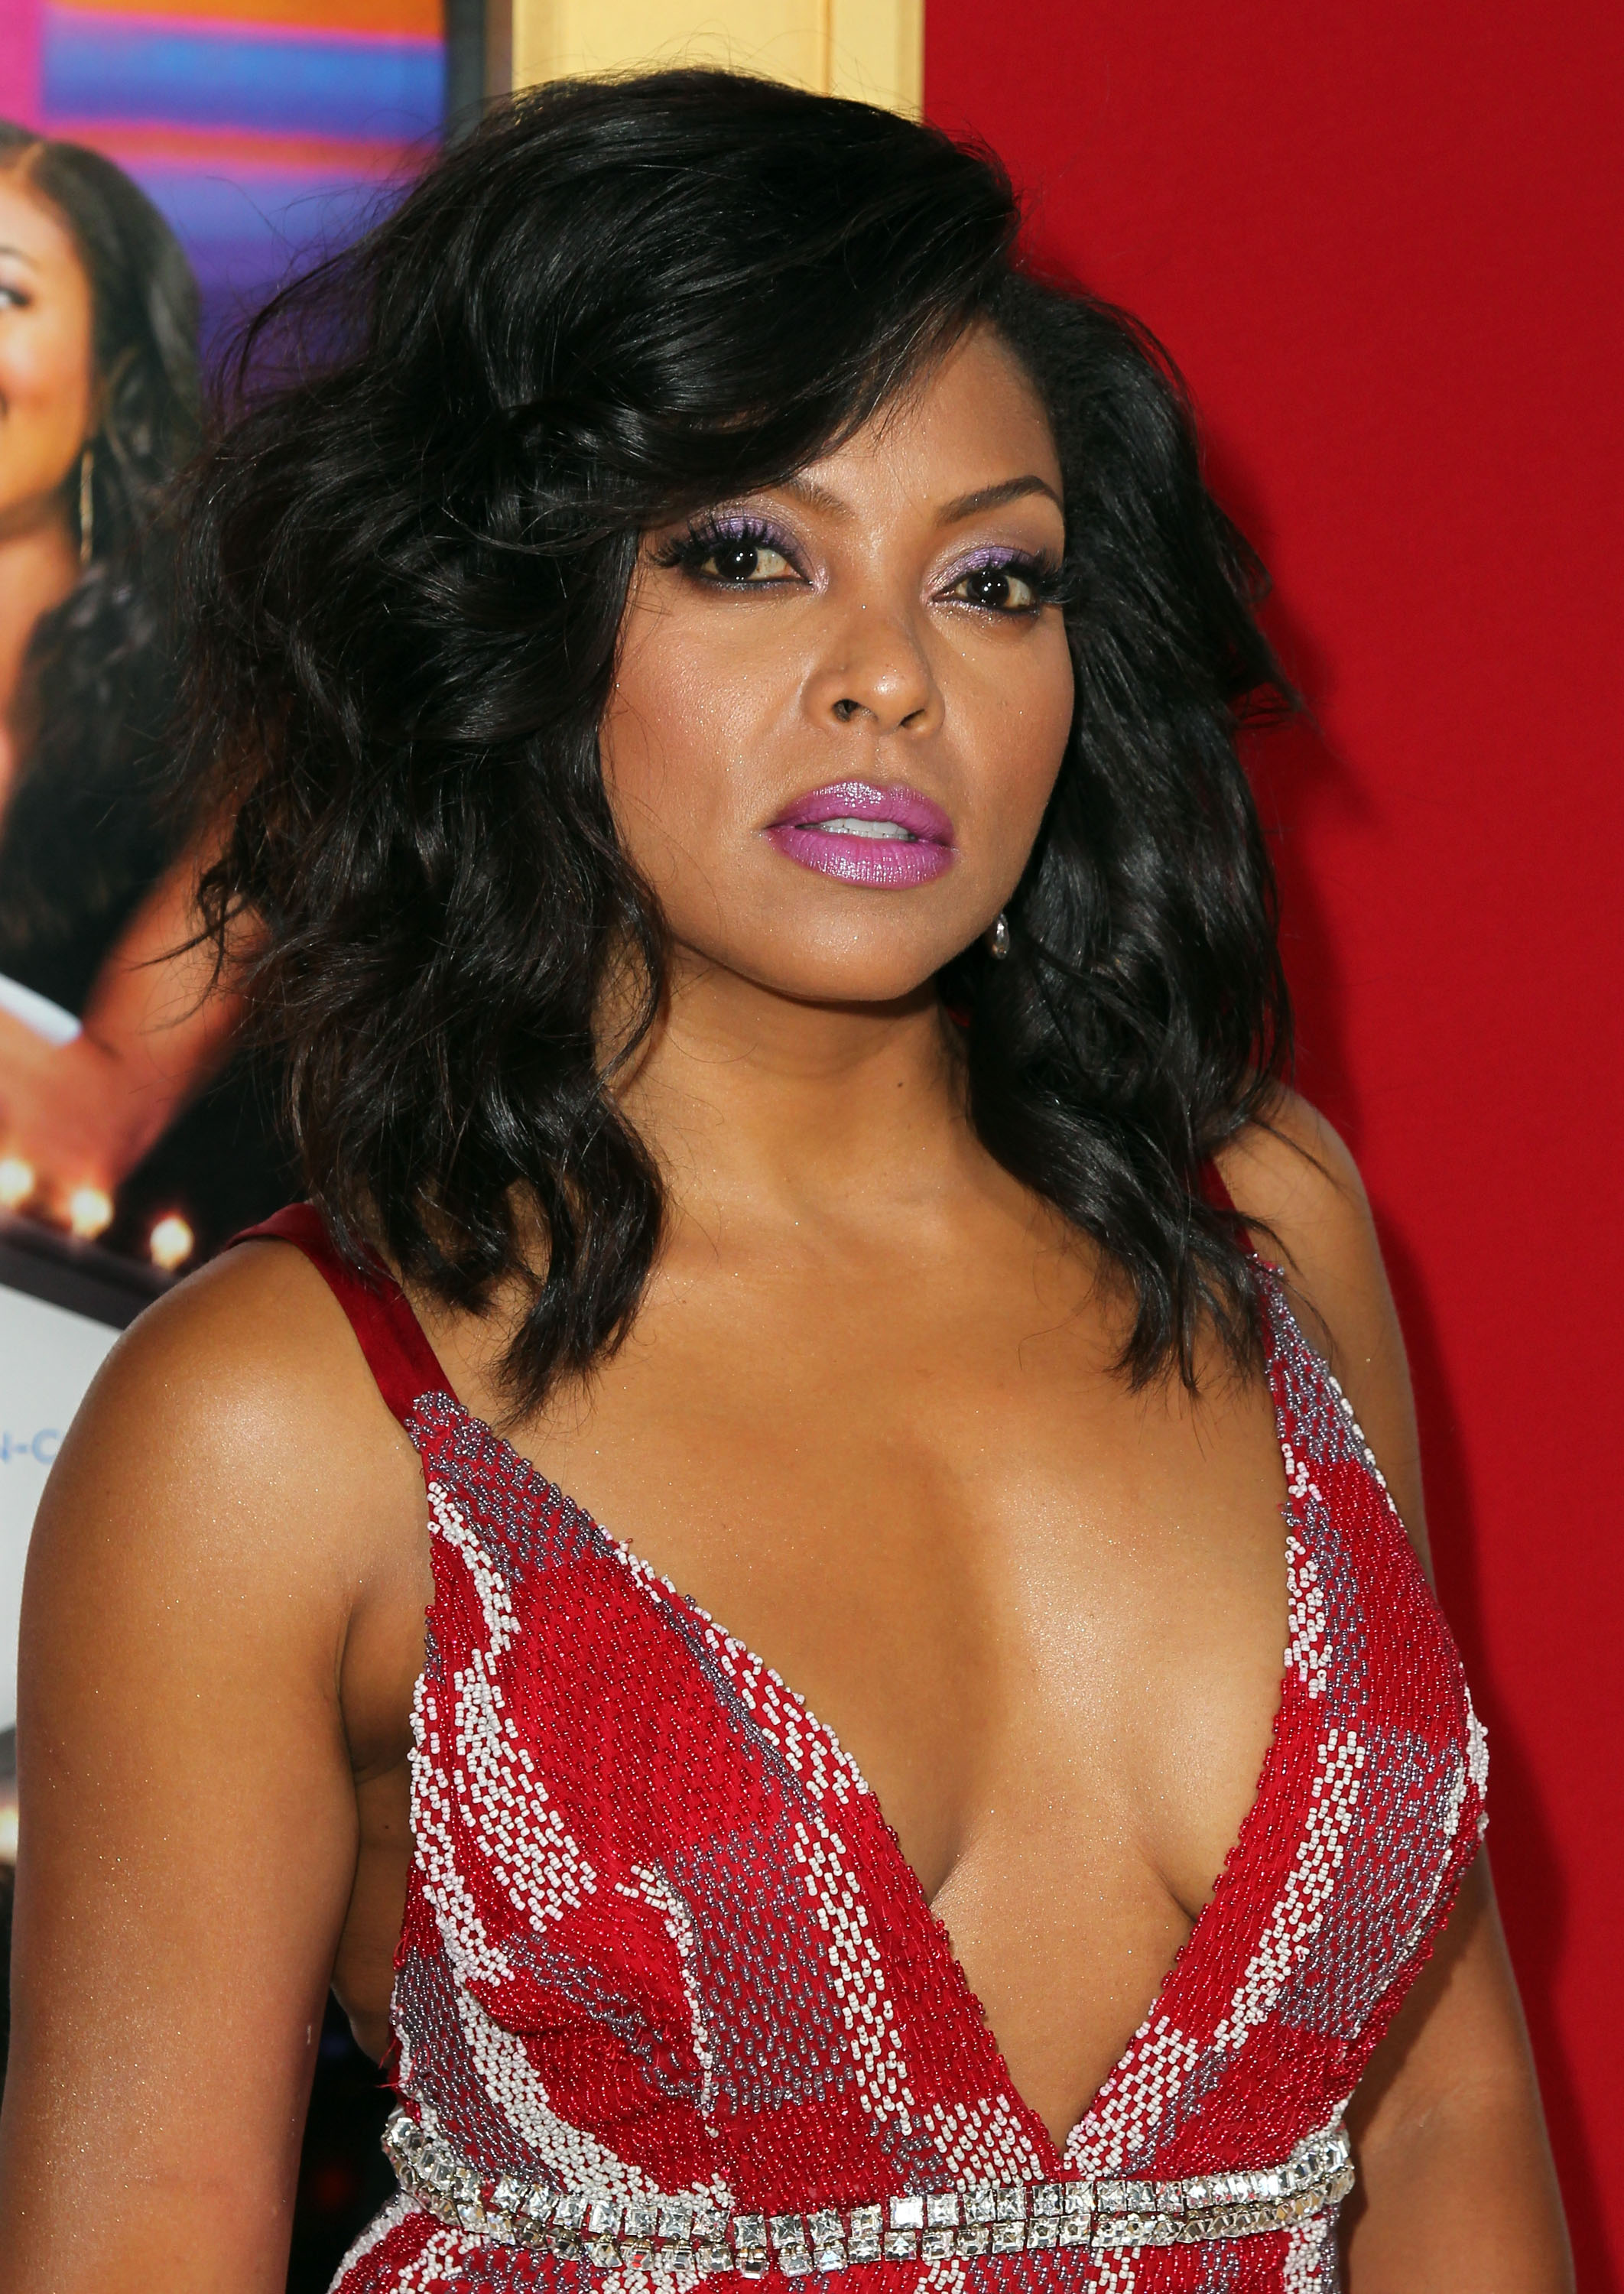 Taraji P. Henson earned a  million dollar salary - leaving the net worth at 6 million in 2018